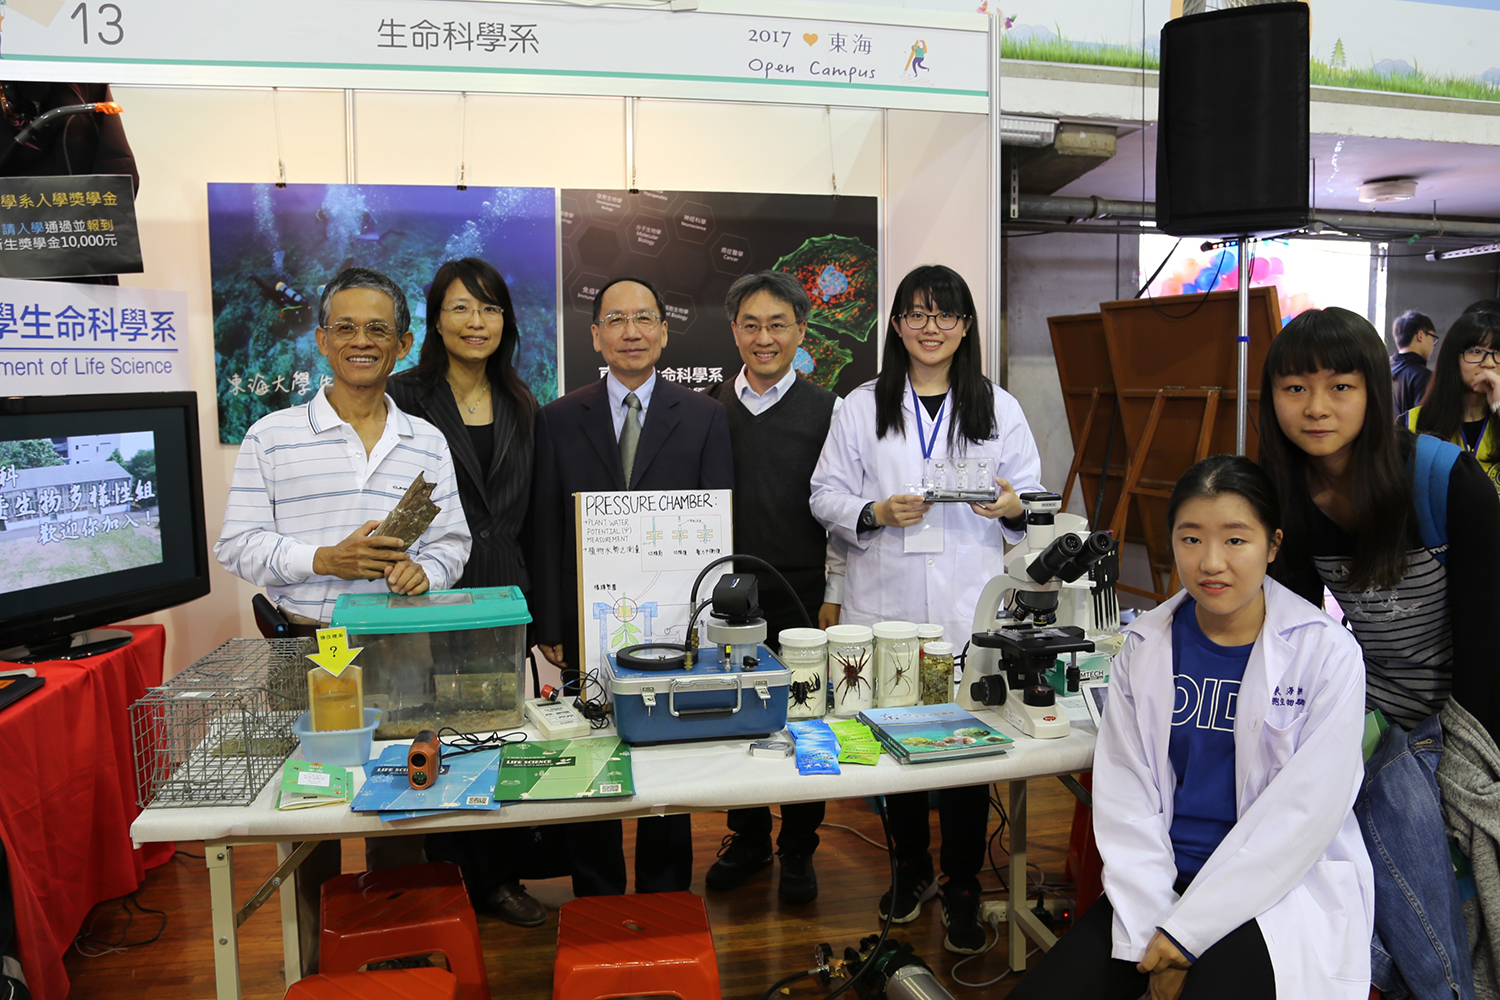 Department of Life Science presents a variety of biospecimen